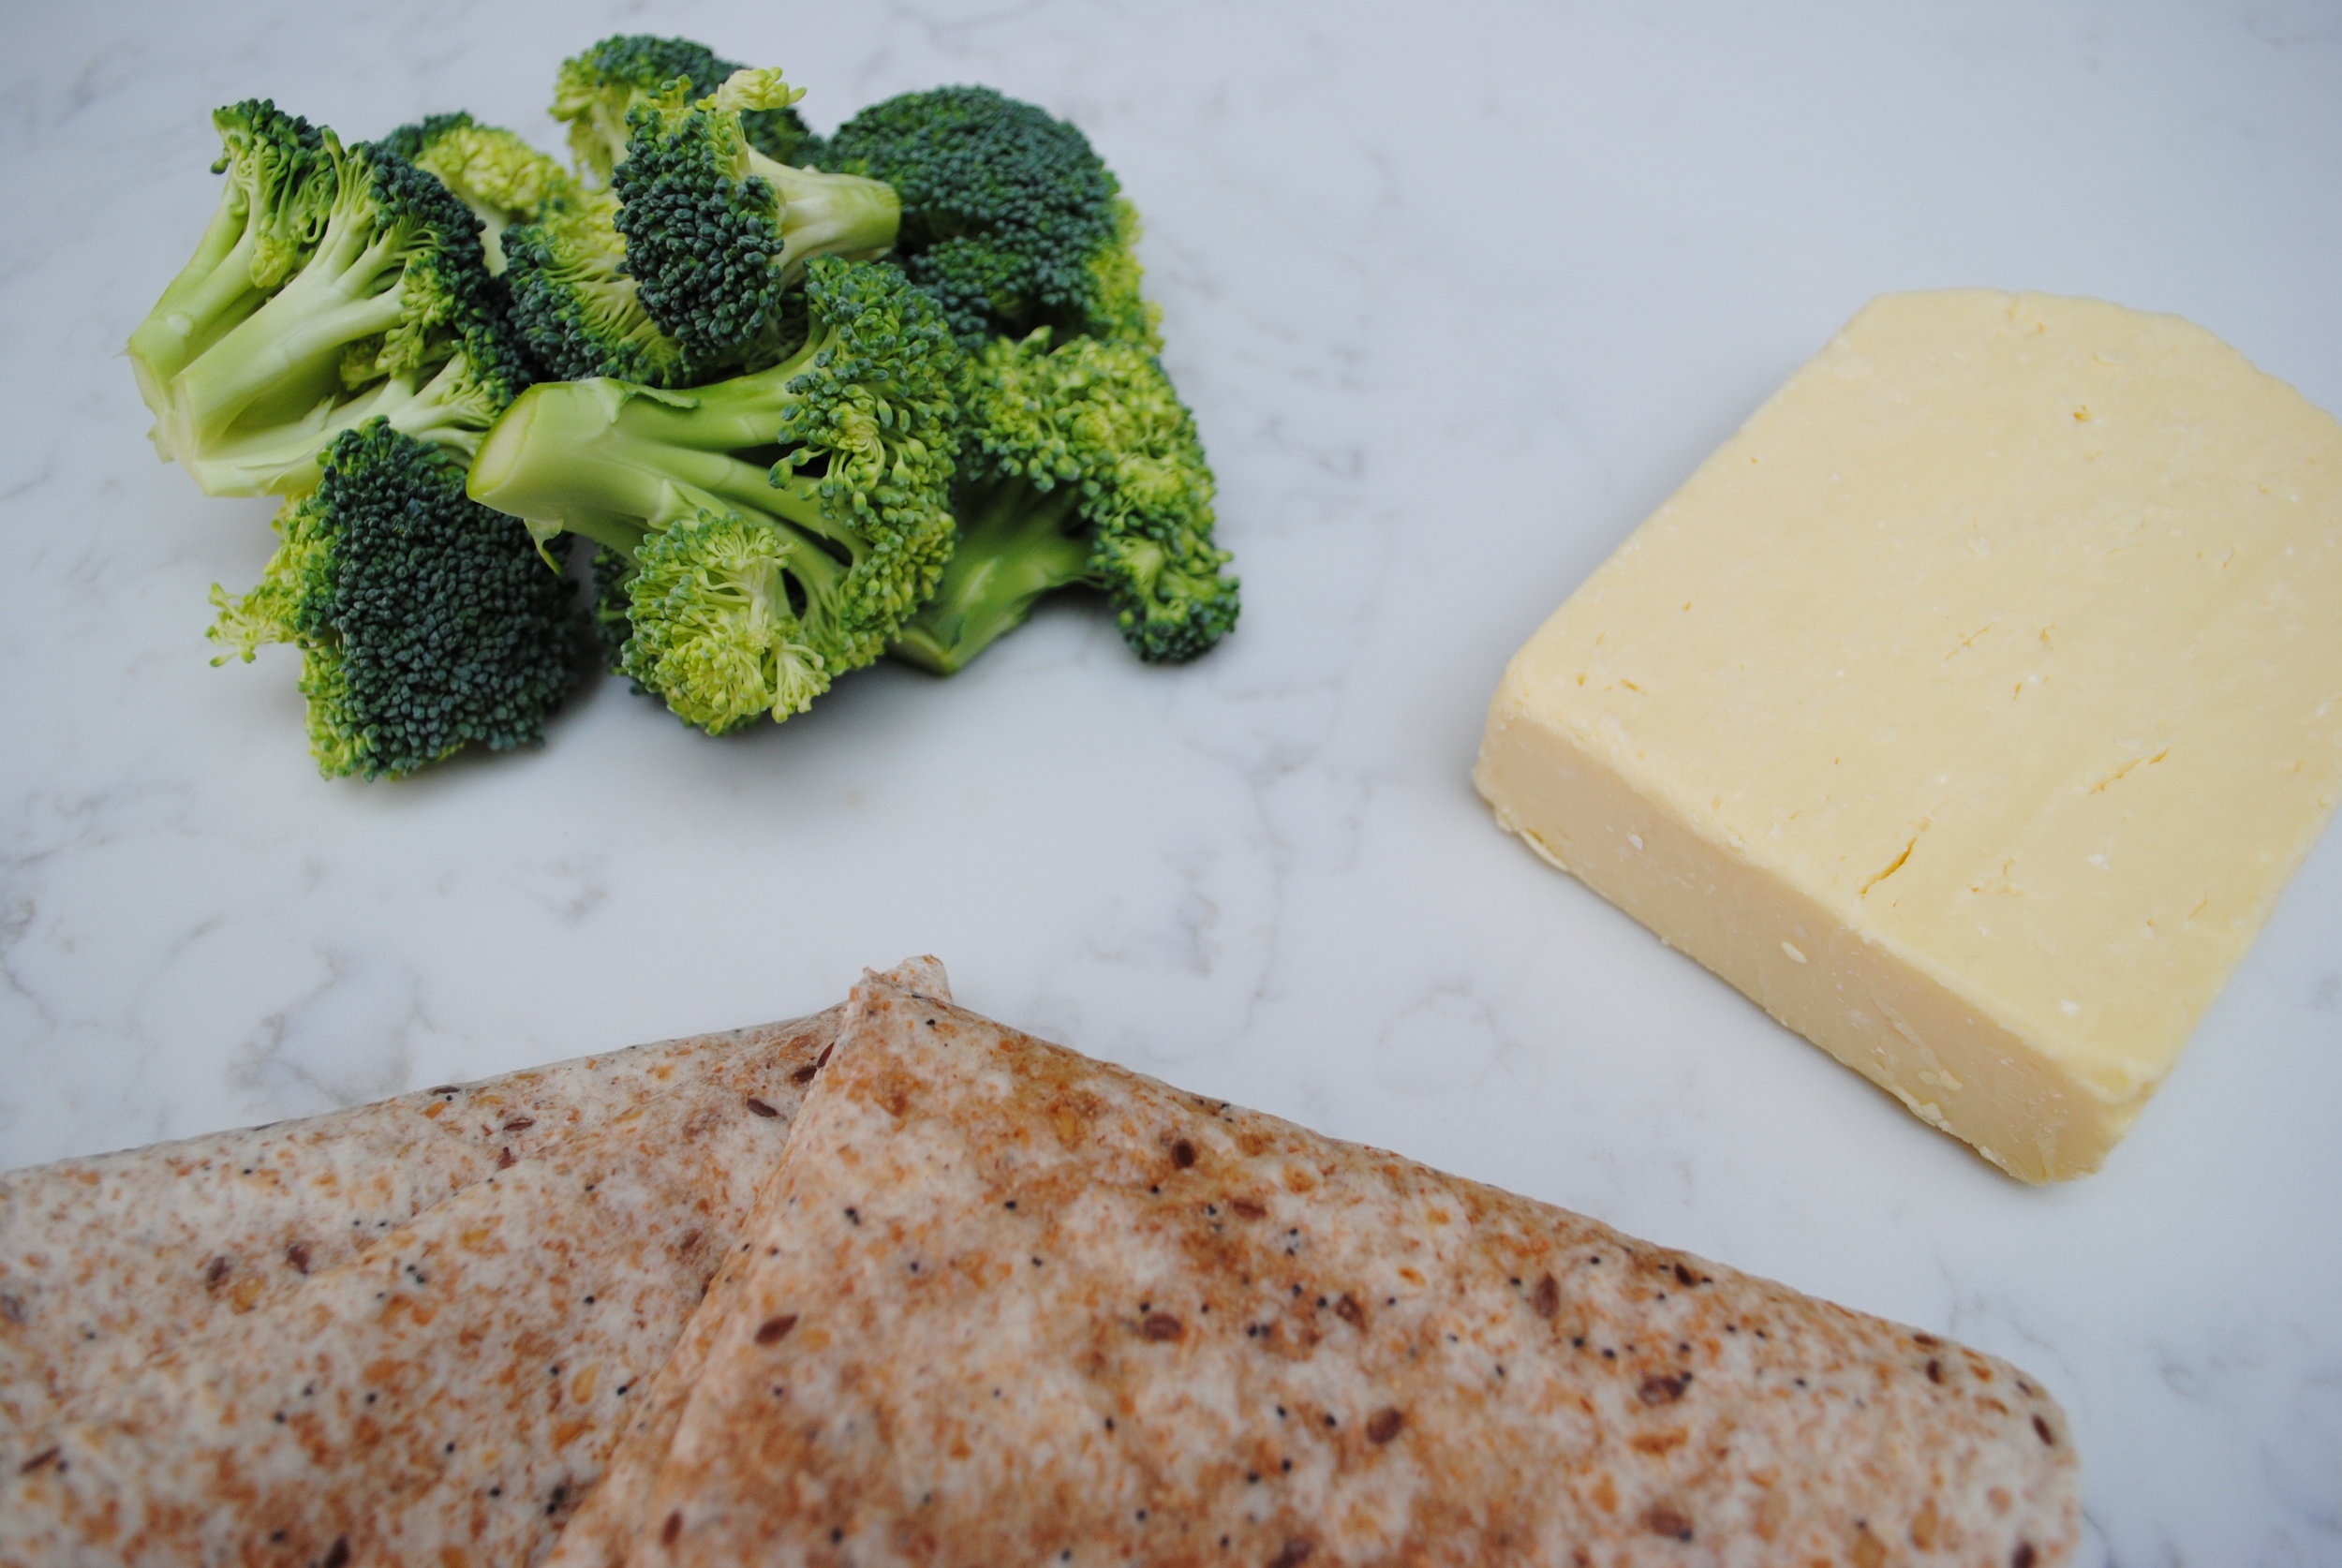 What you need: wraps, broccoli, cheese